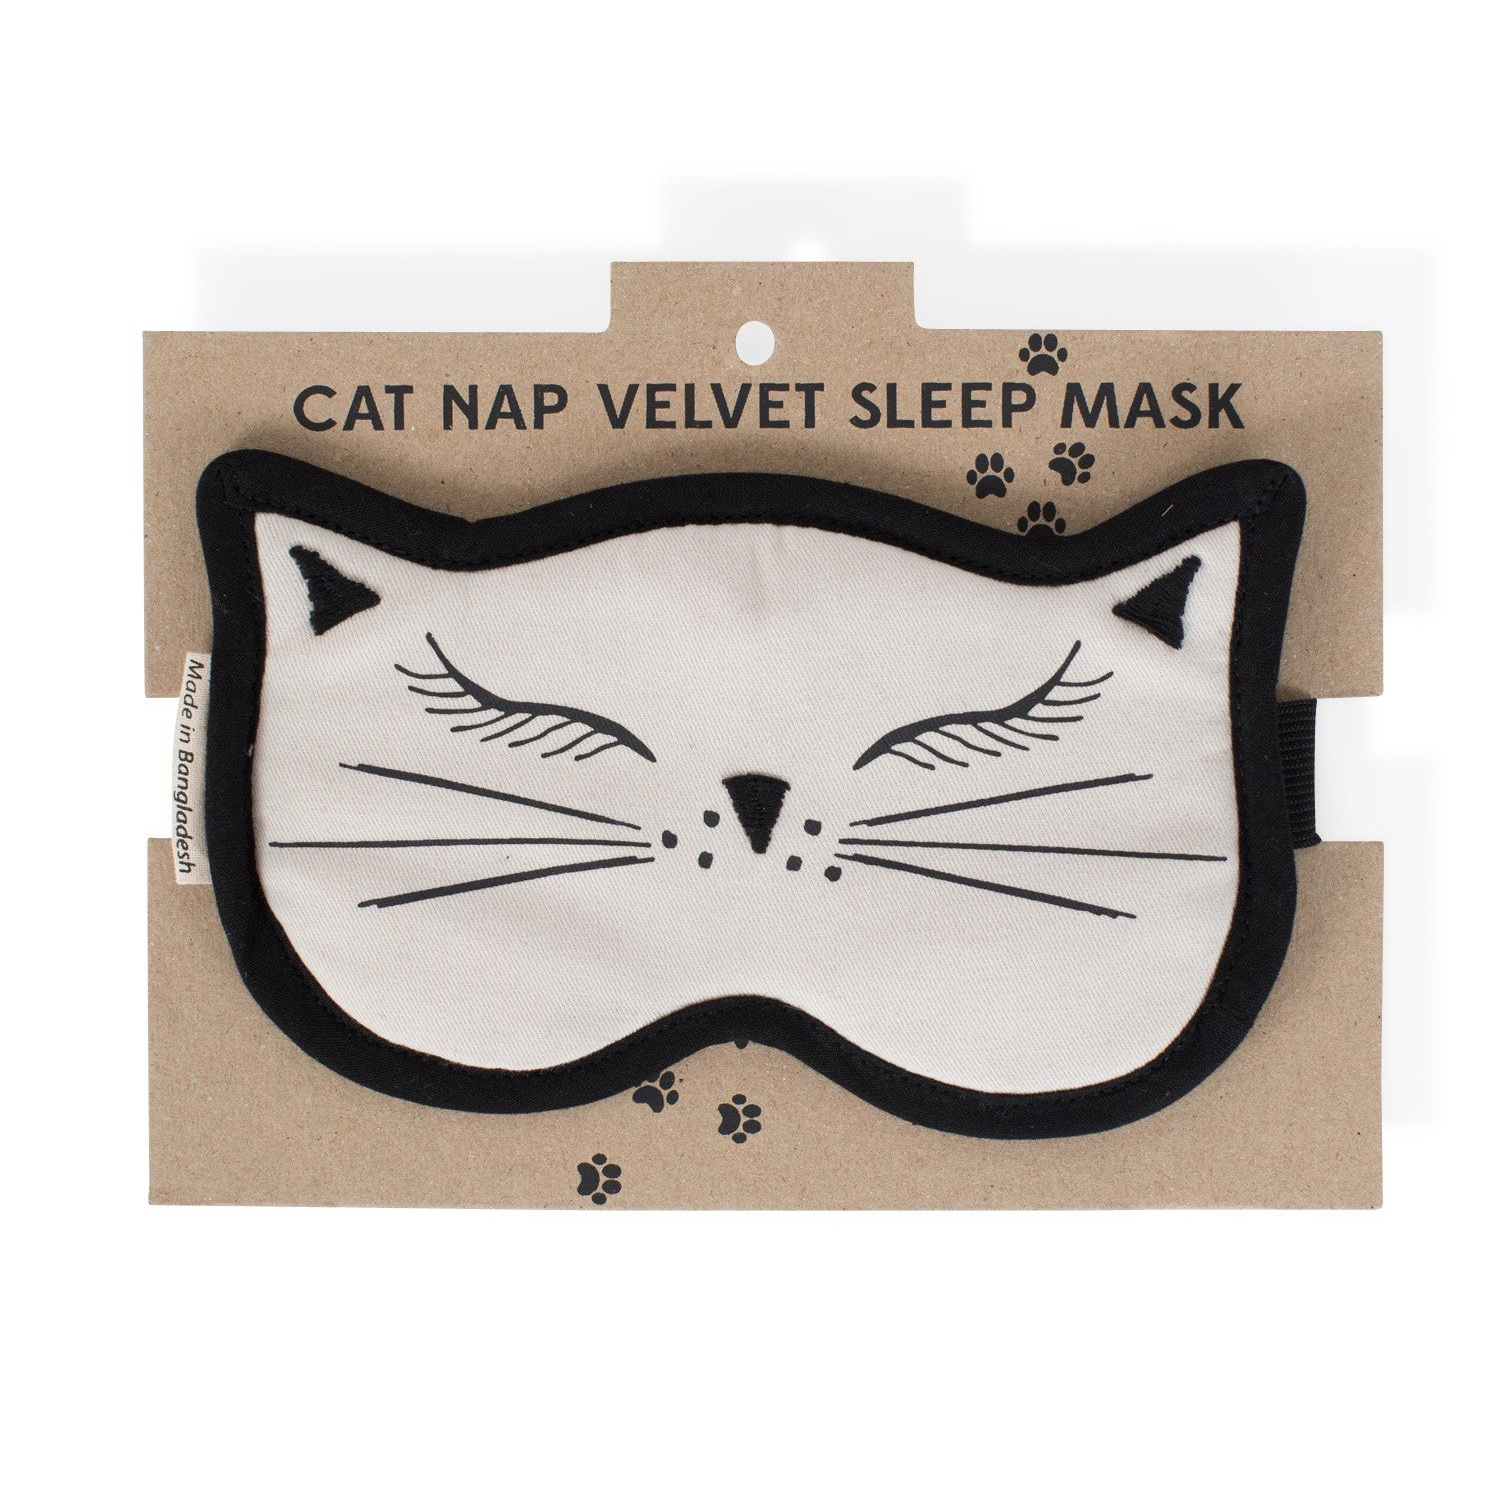 Cat Nap Velvet Sleep Mask